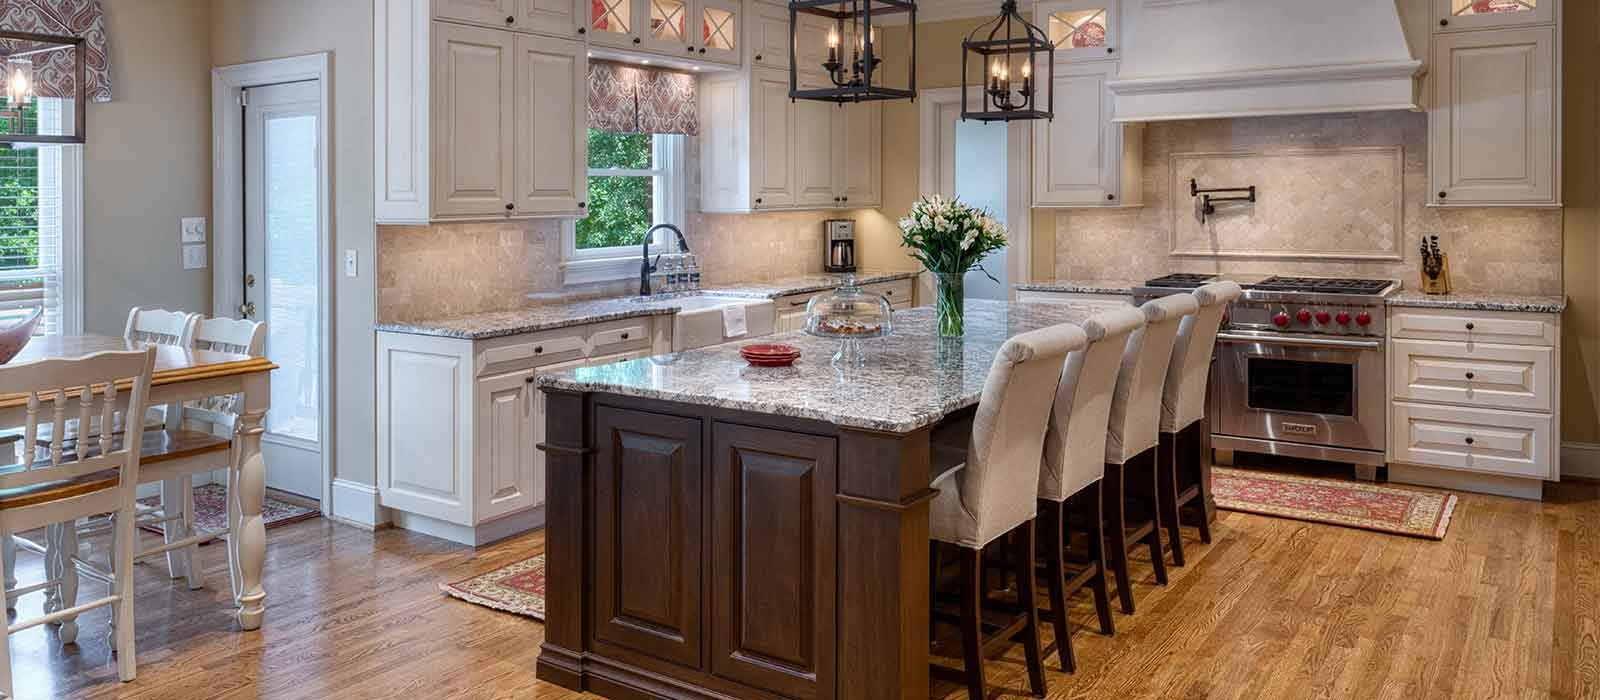 capitol-design-award-winning-kitchen-bathroom-design-remodel-renovation-austin-tx-1